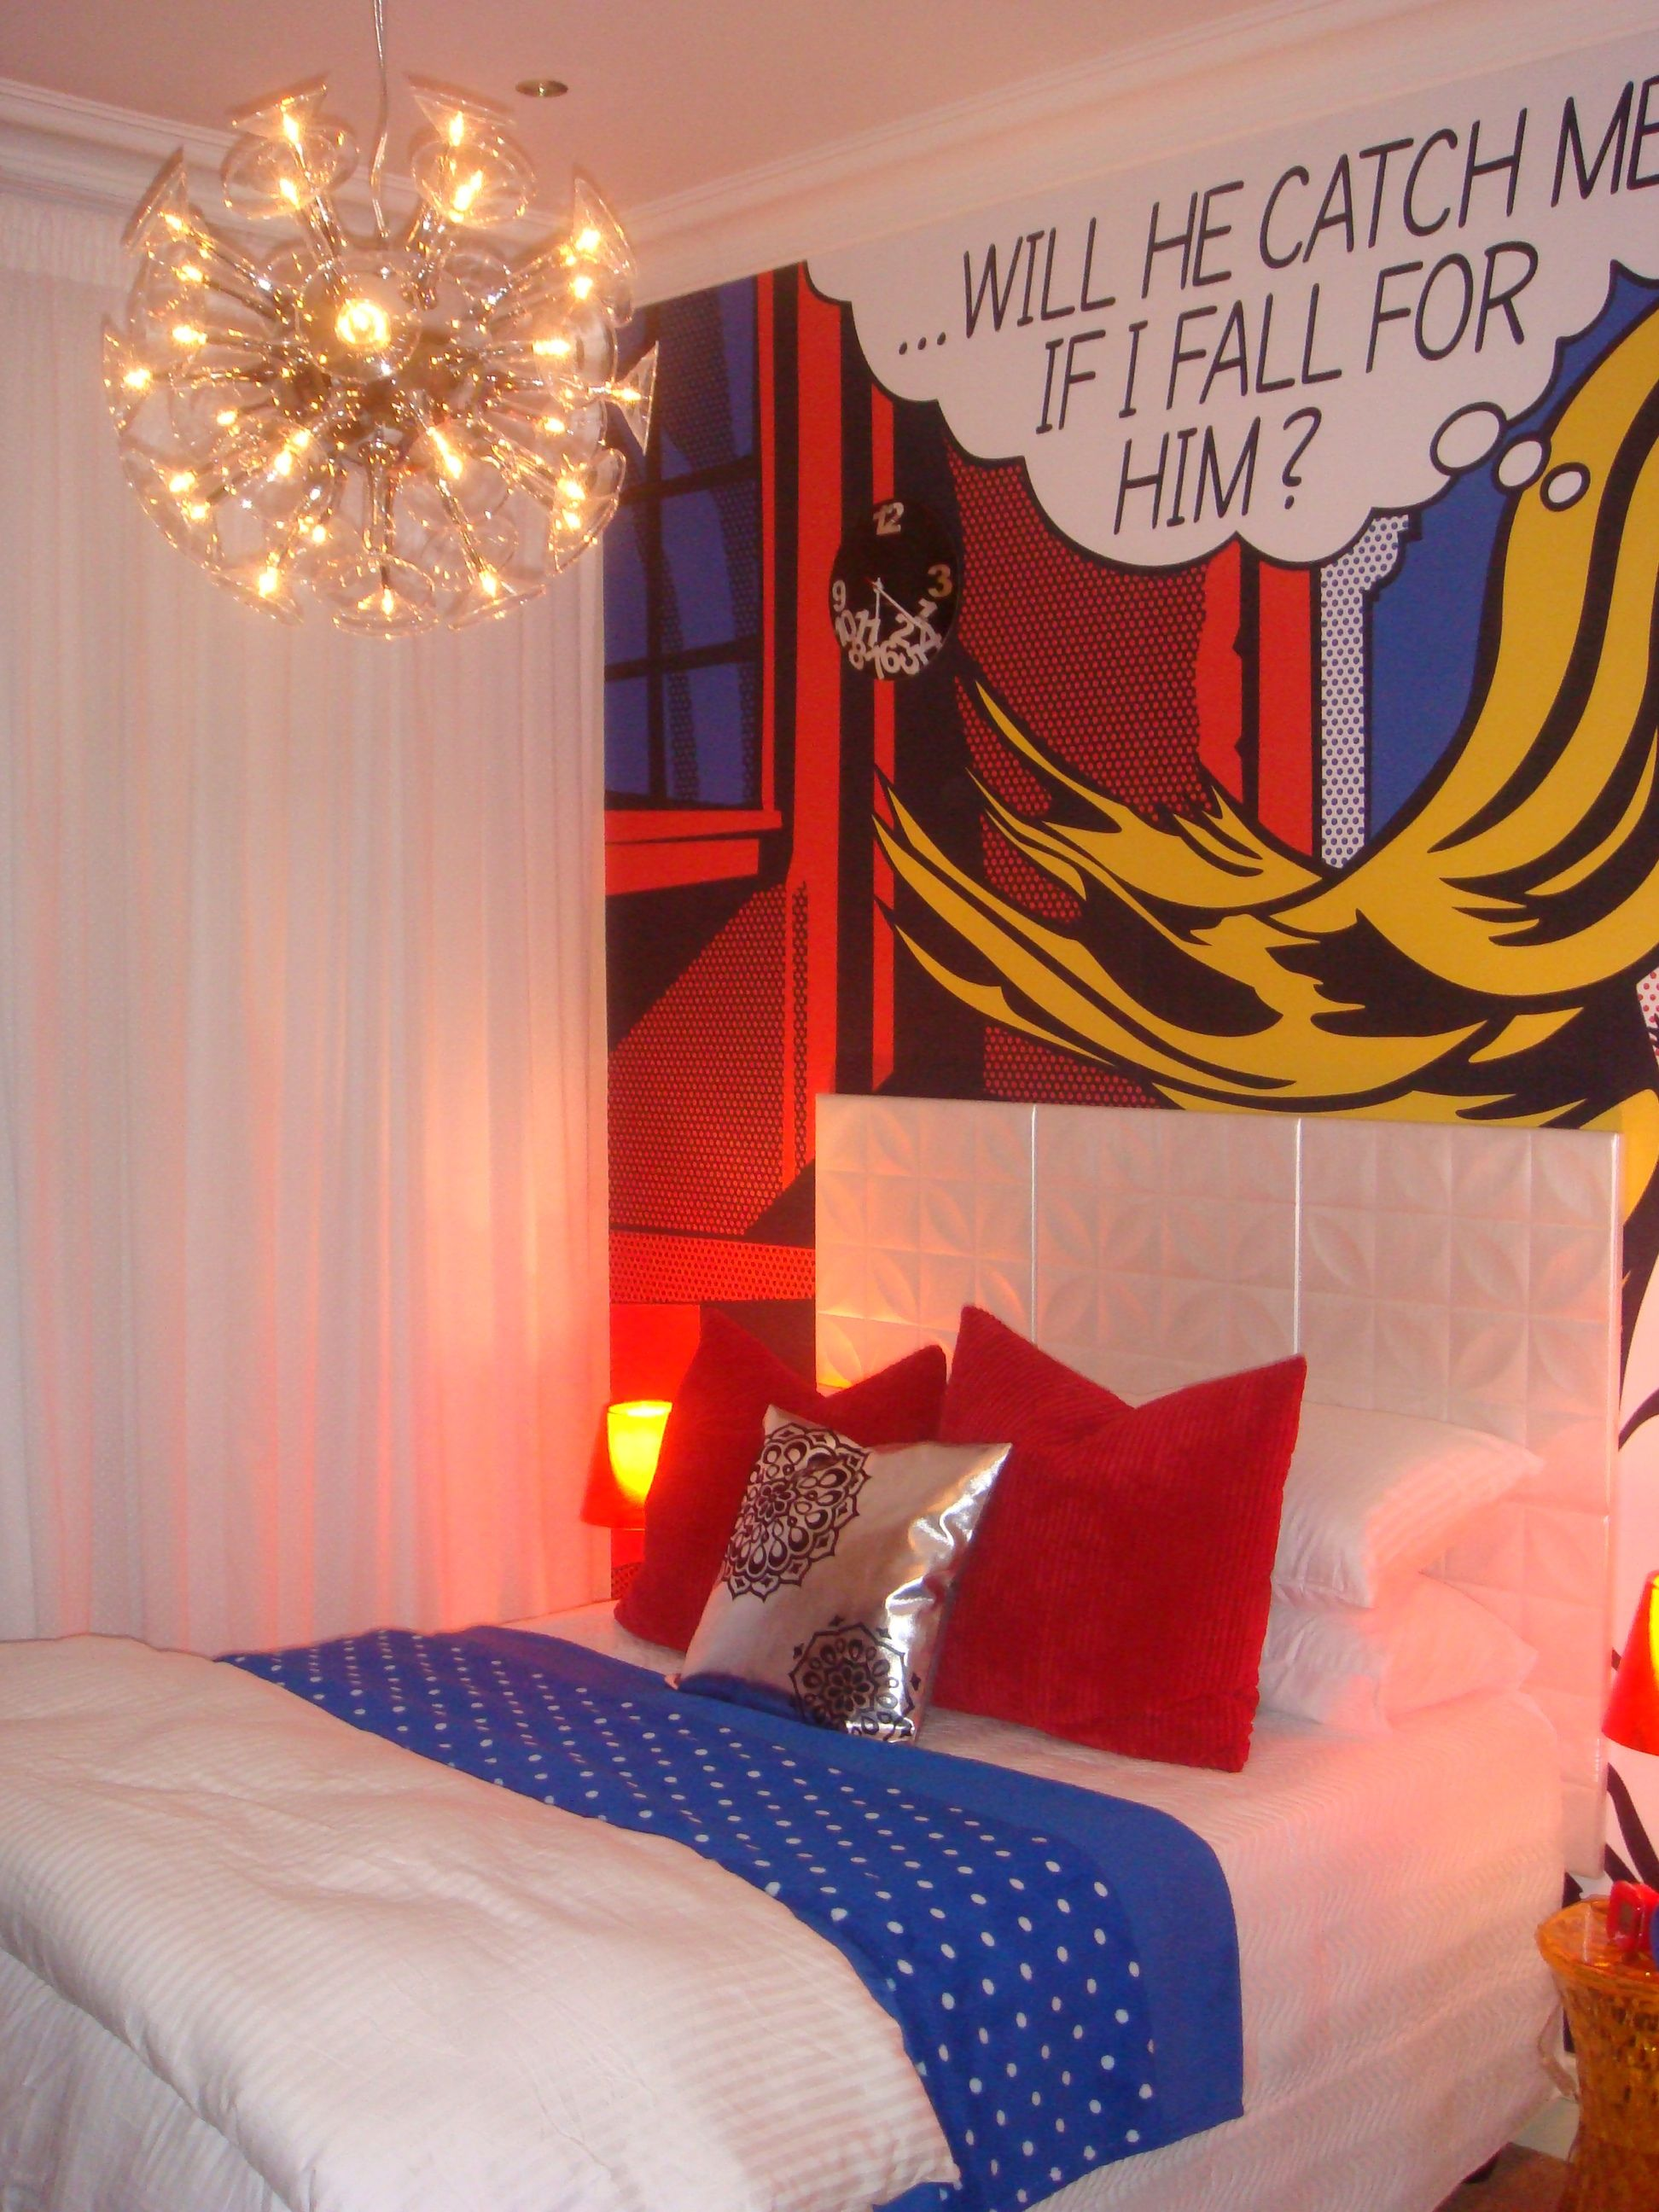 decoration interieure le pop art entre dans la maison pop art pop art roy lichtenstein inspired bedroom red blue yellow colour palette